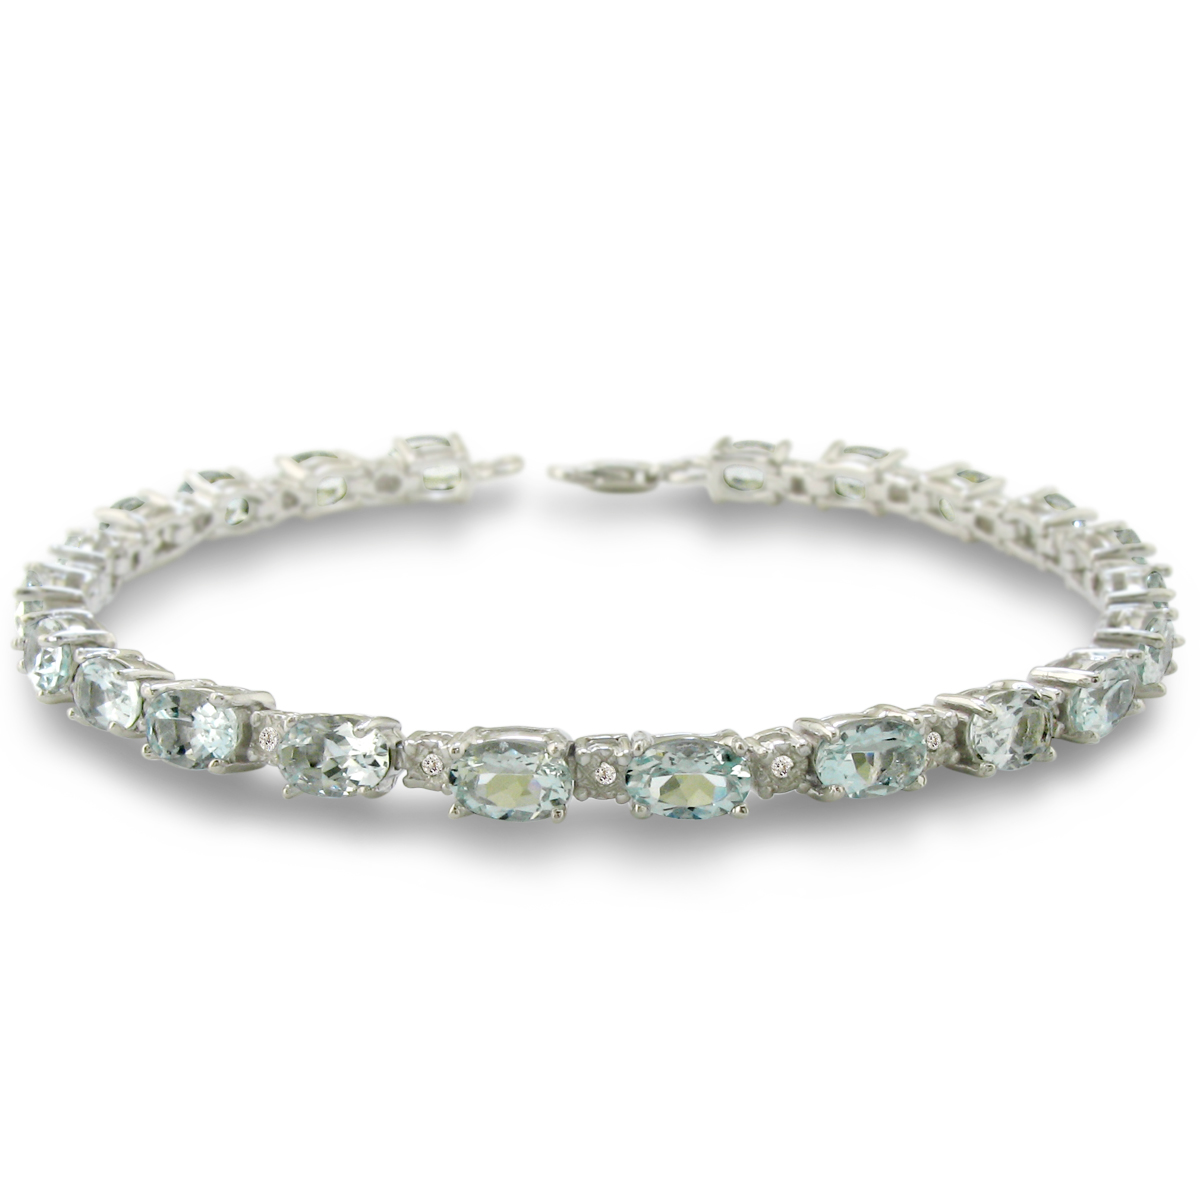 10 Carat Aquamarine and Diamond Bracelet in Sterling Silver 7 inches